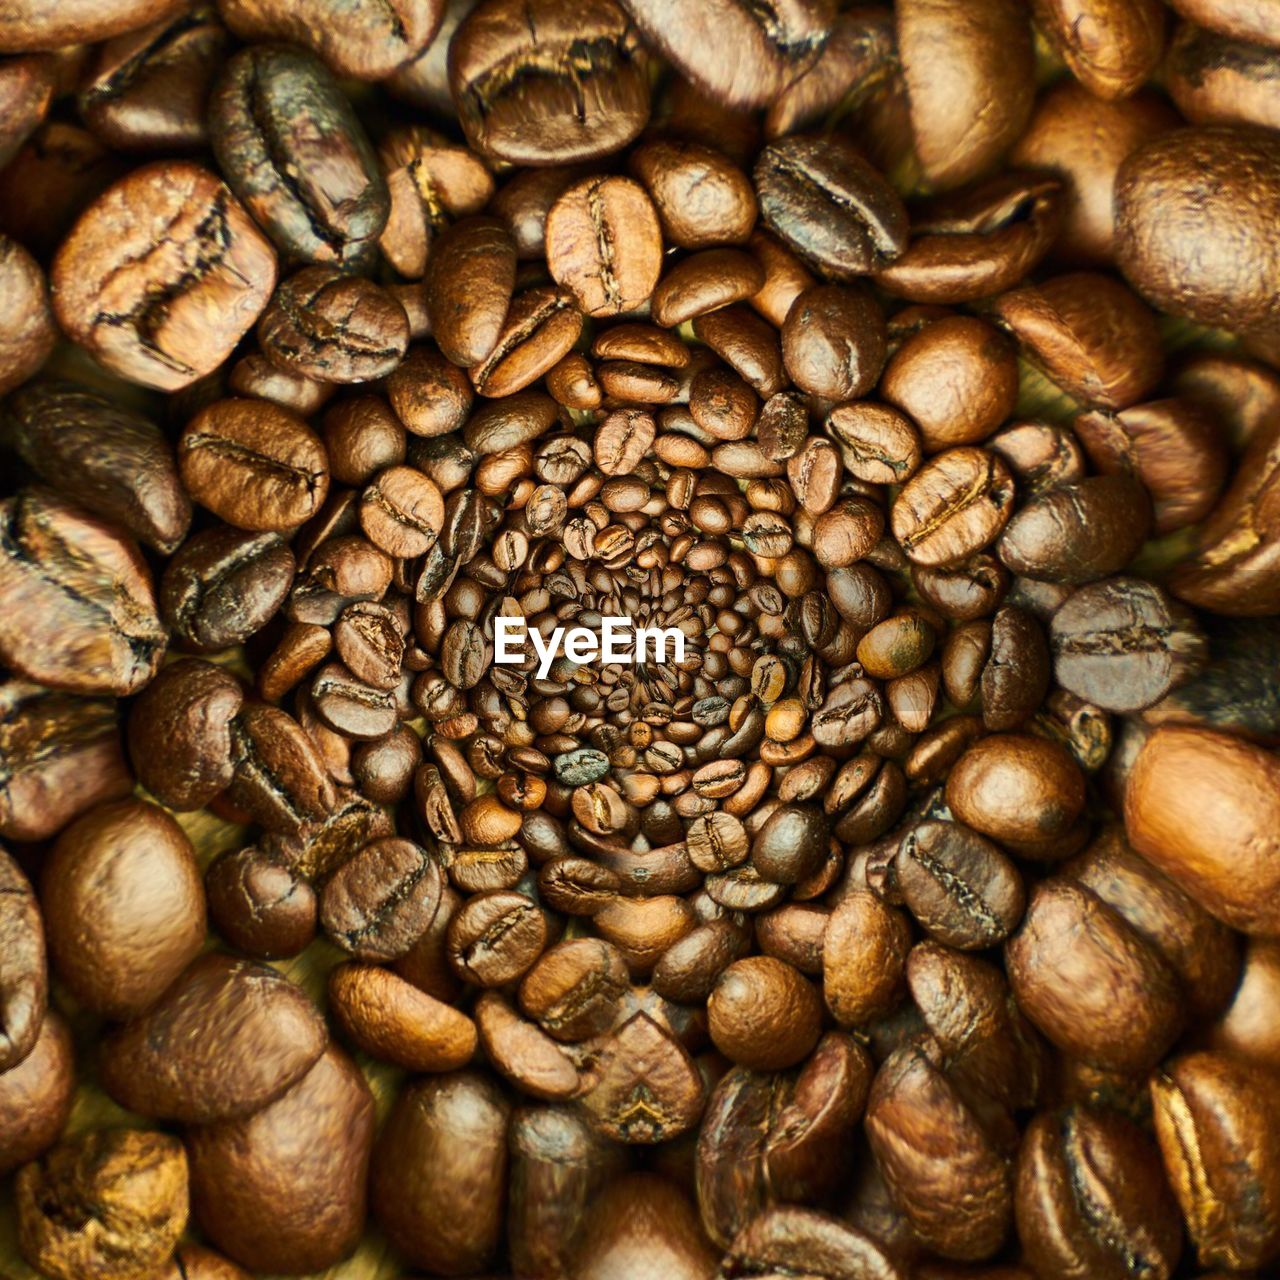 roasted coffee bean, food and drink, full frame, backgrounds, coffee - drink, no people, brown, large group of objects, freshness, roasted, close-up, food, raw coffee bean, indoors, nature, coffee bean, day